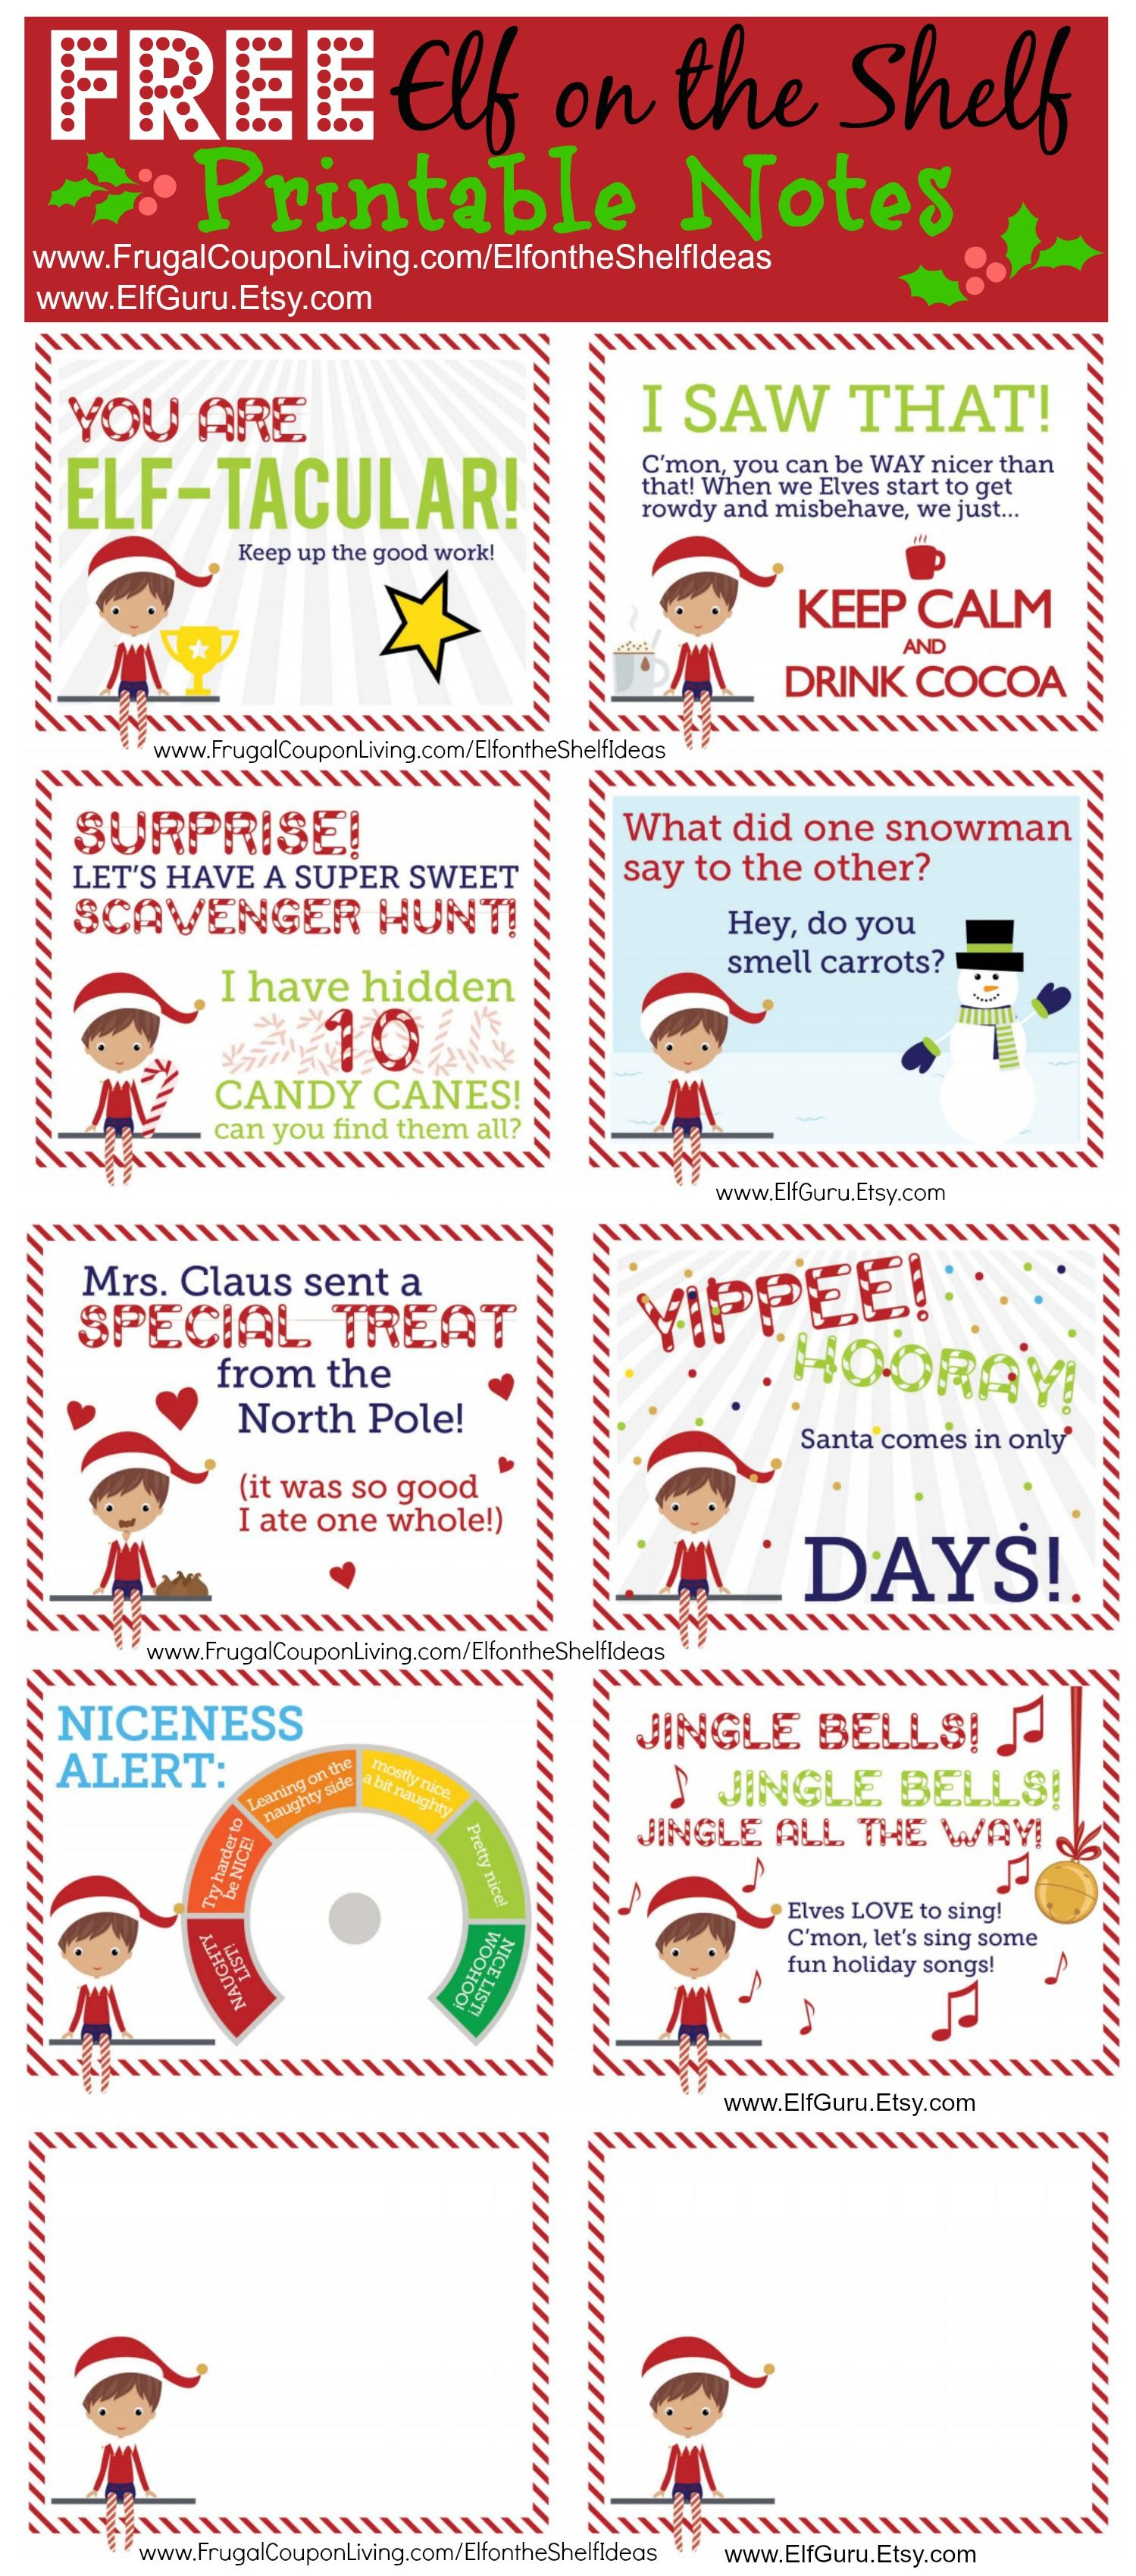 Free Elf On The Shelf Notes. | Holiday: Elf On The Shelf Ideas - Free Printable Elf On The Shelf Notes